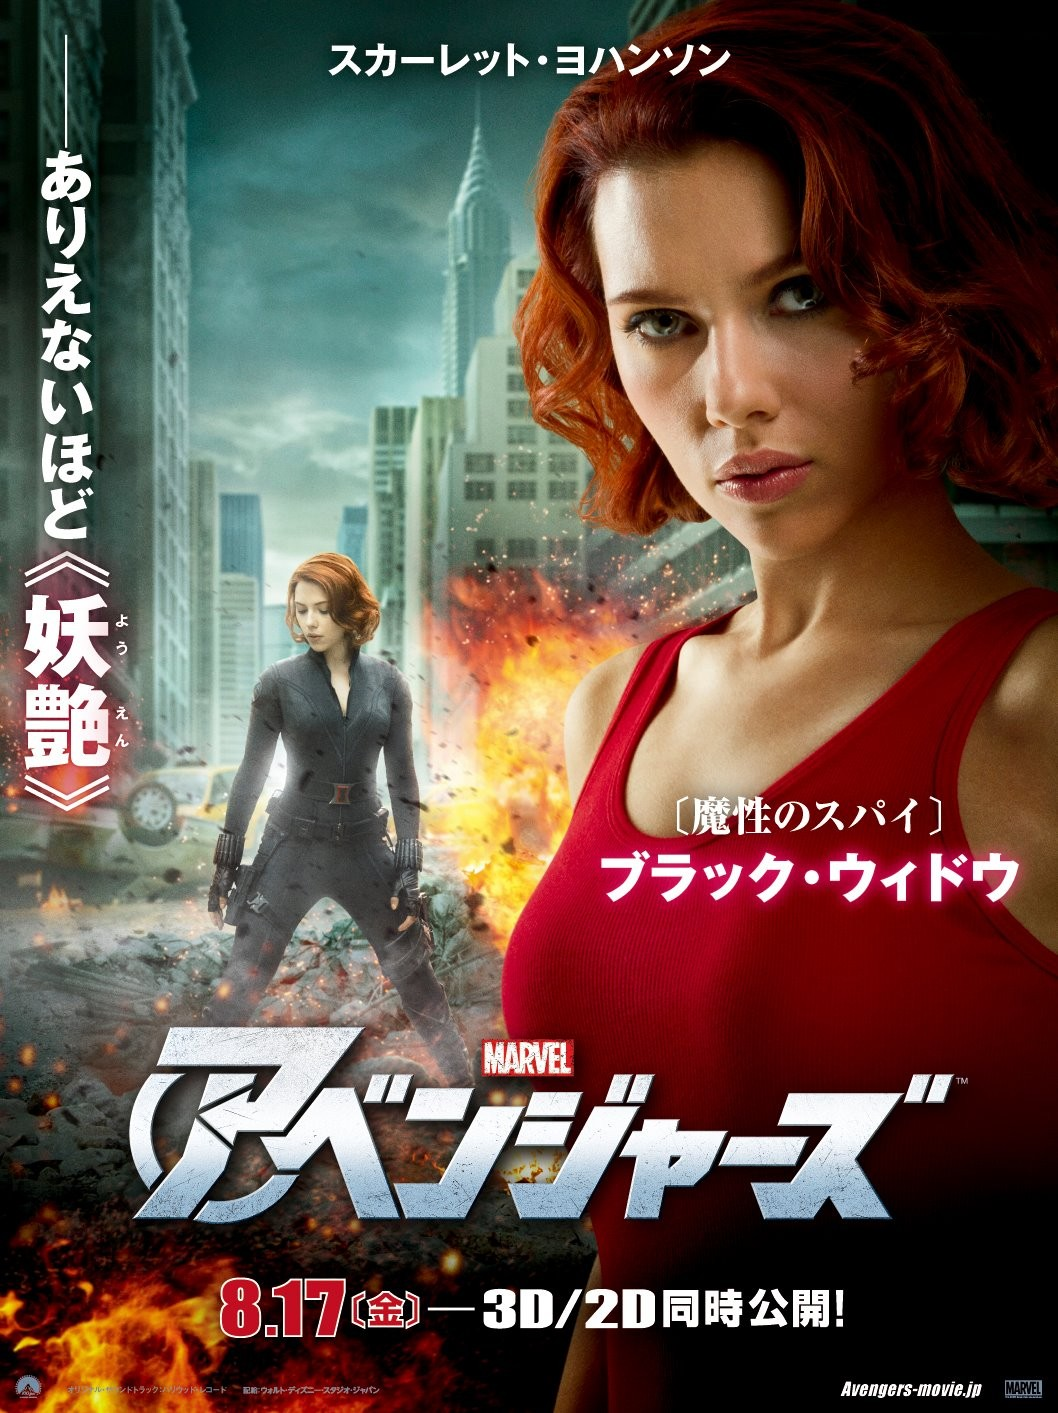 The Avengers - Black Widow poster - Japan